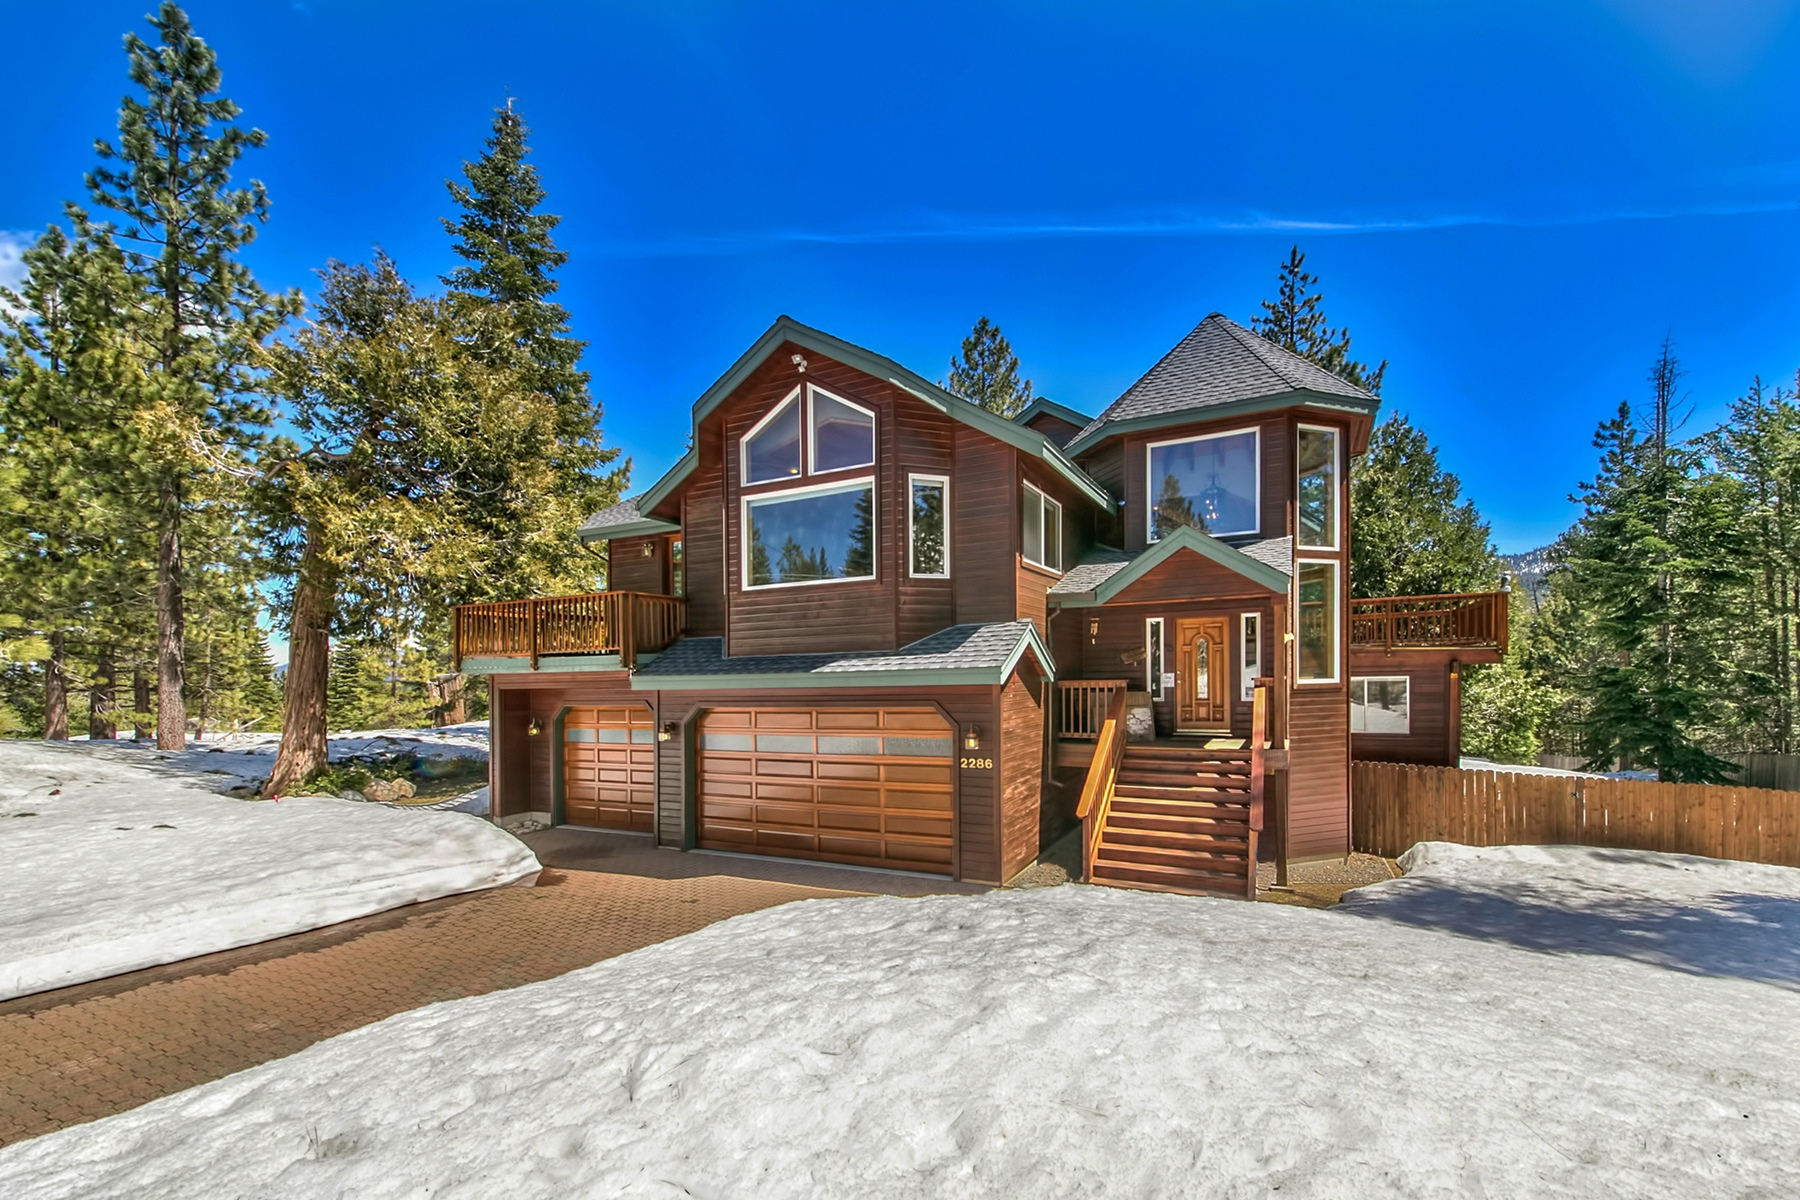 Single Family Home for Sale at 2286 Chiapa Drive, South Lake Tahoe, California 96150 South Lake Tahoe, California 96150 United States